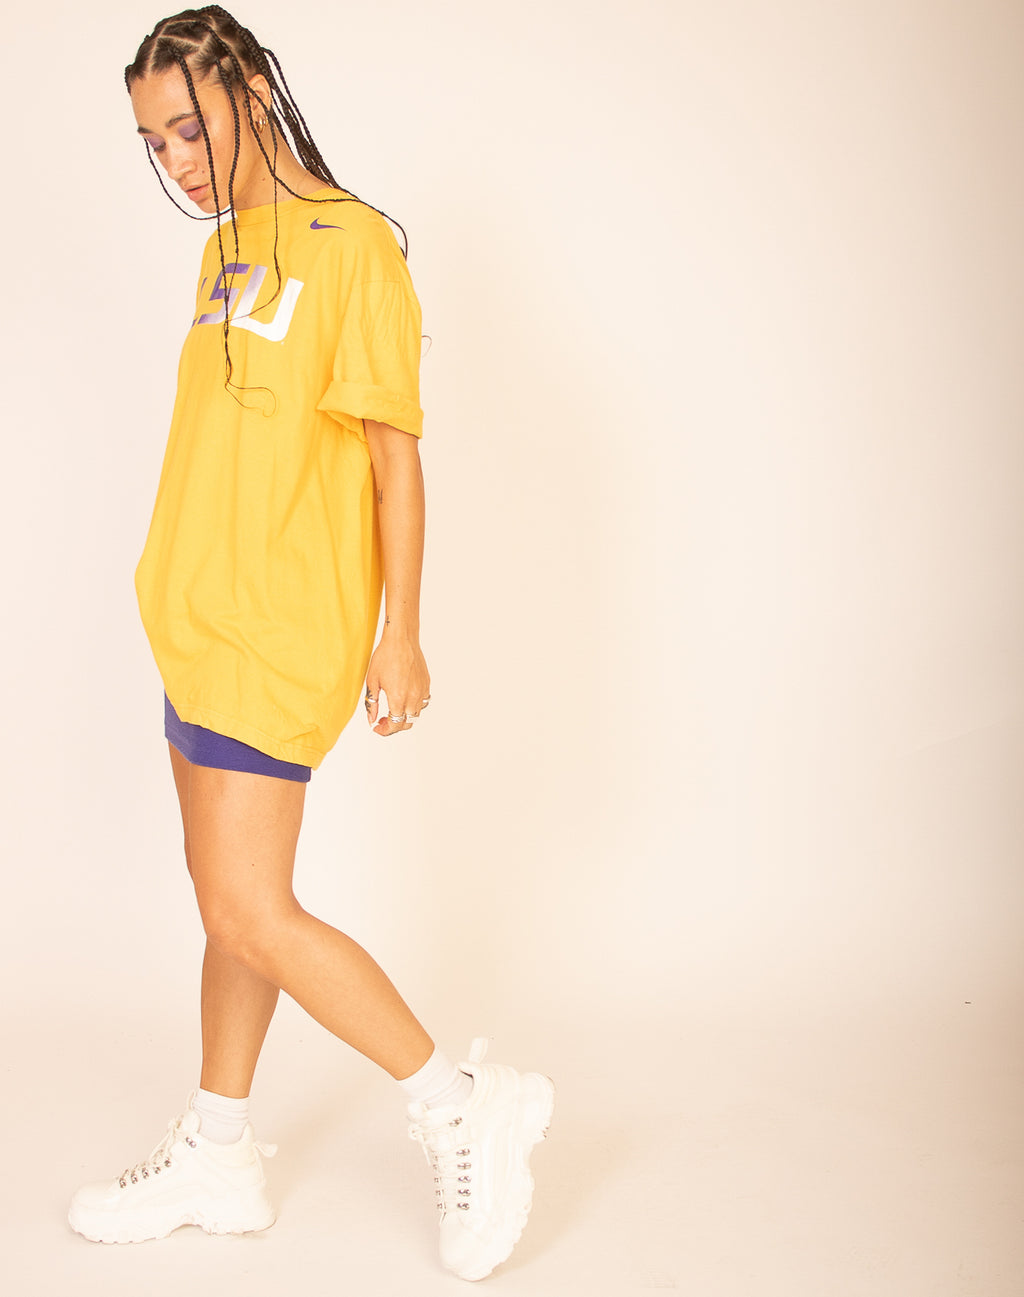 NIKE YELLOW T-SHIRT